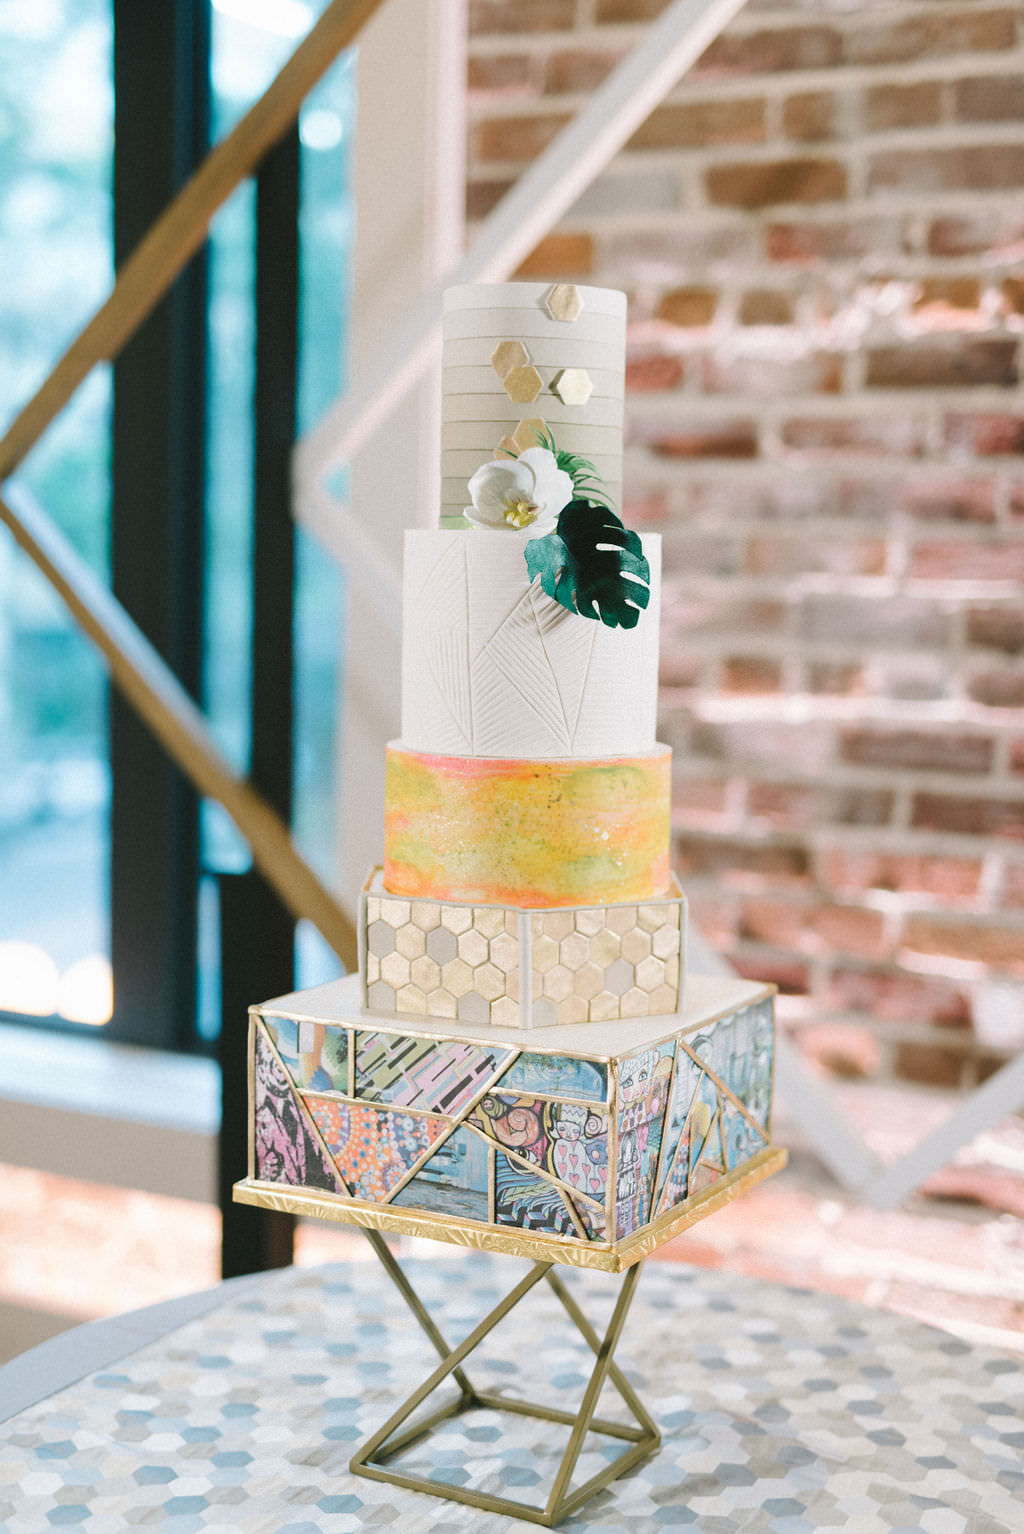 Unique Modern Five Tier Wedding Cake with St. Pete Mural Bottom Tier, Geometric Gold Tier, Bright Pink and Yellow Tier, White Tier and White and Ombre Taupe Top Tier Wedding Cake | Tampa Bay Wedding Photographer Kera Photography | St. Pete Wedding Baker The Artistic Whisk